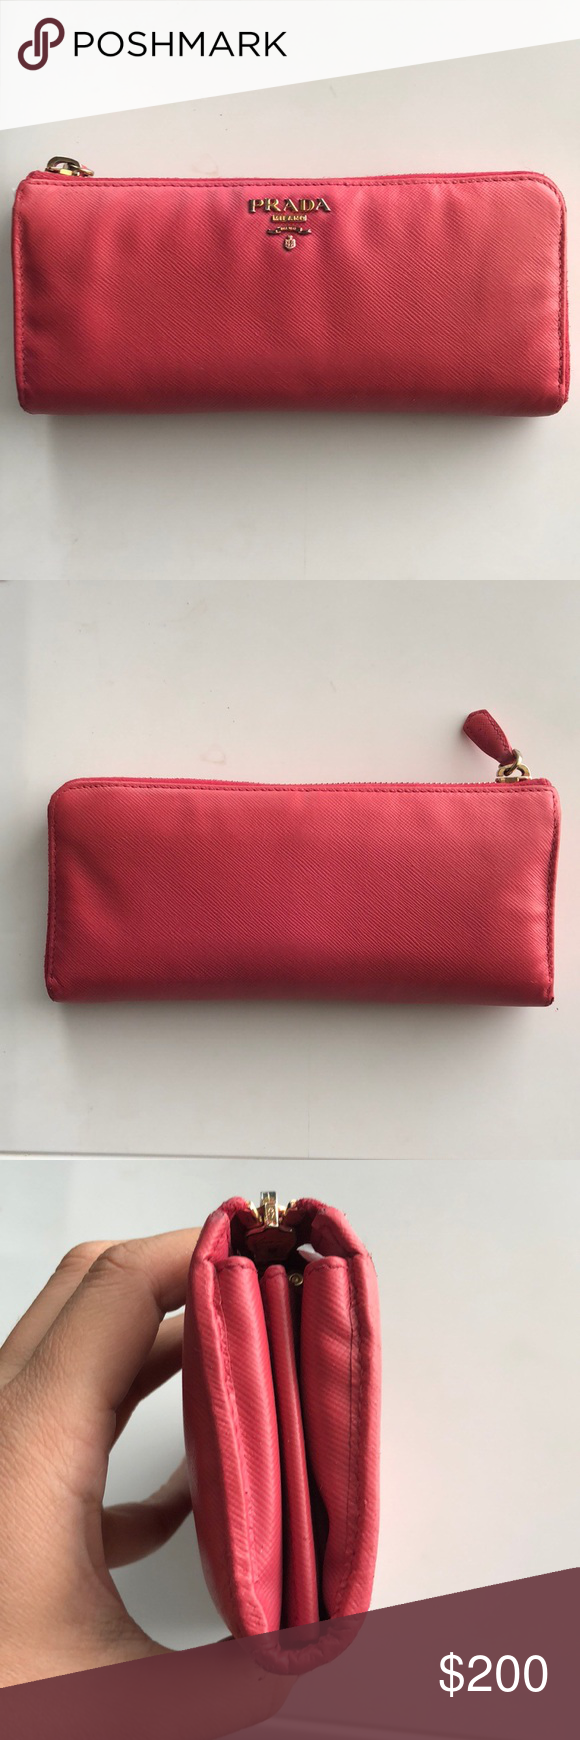 a789bb1c9f0995 Prada saffiano leather continental wallet pink Great used condition except  for slight leather wrinkling. Prada